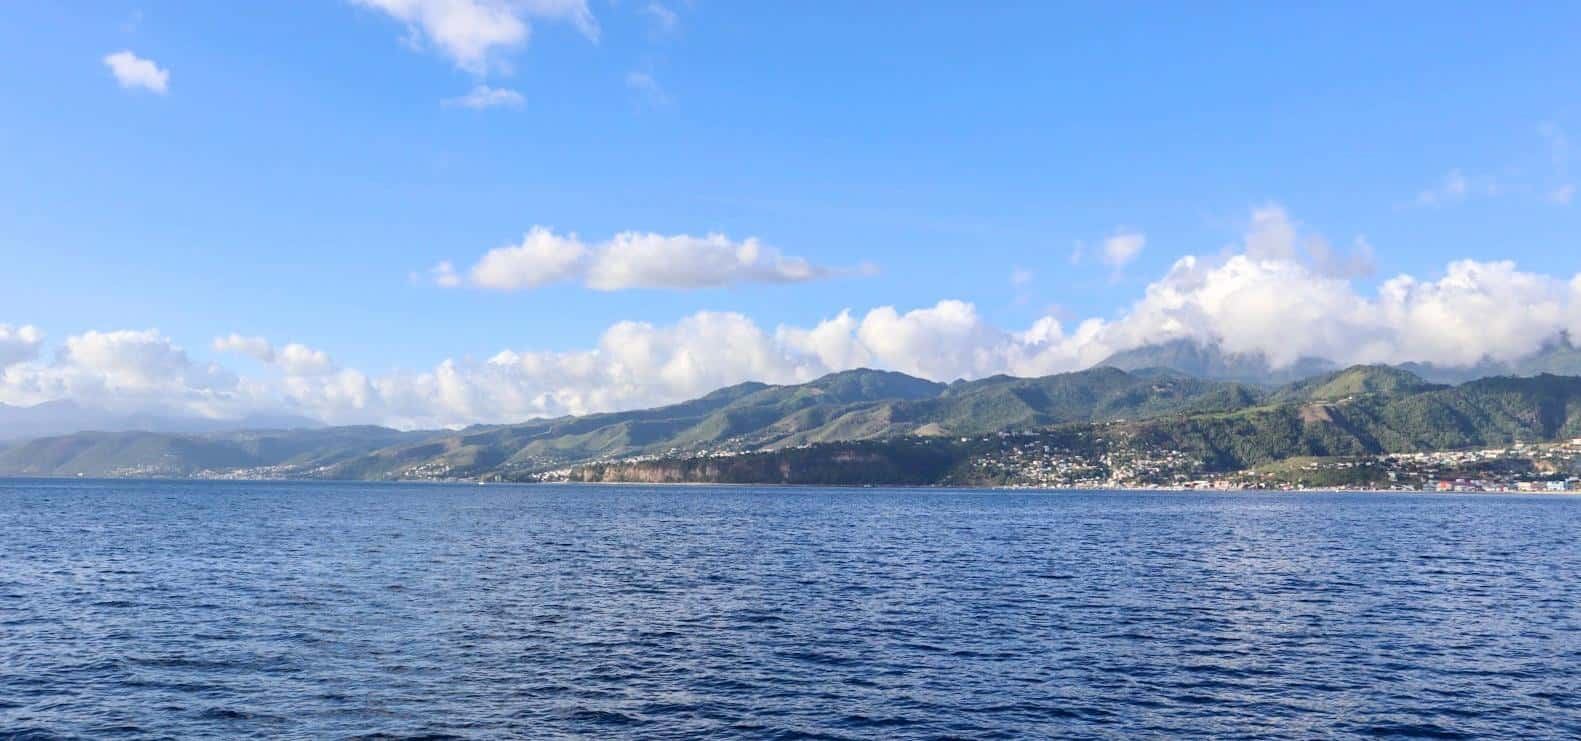 dominica island and mountains from the ocean | dominica day tours